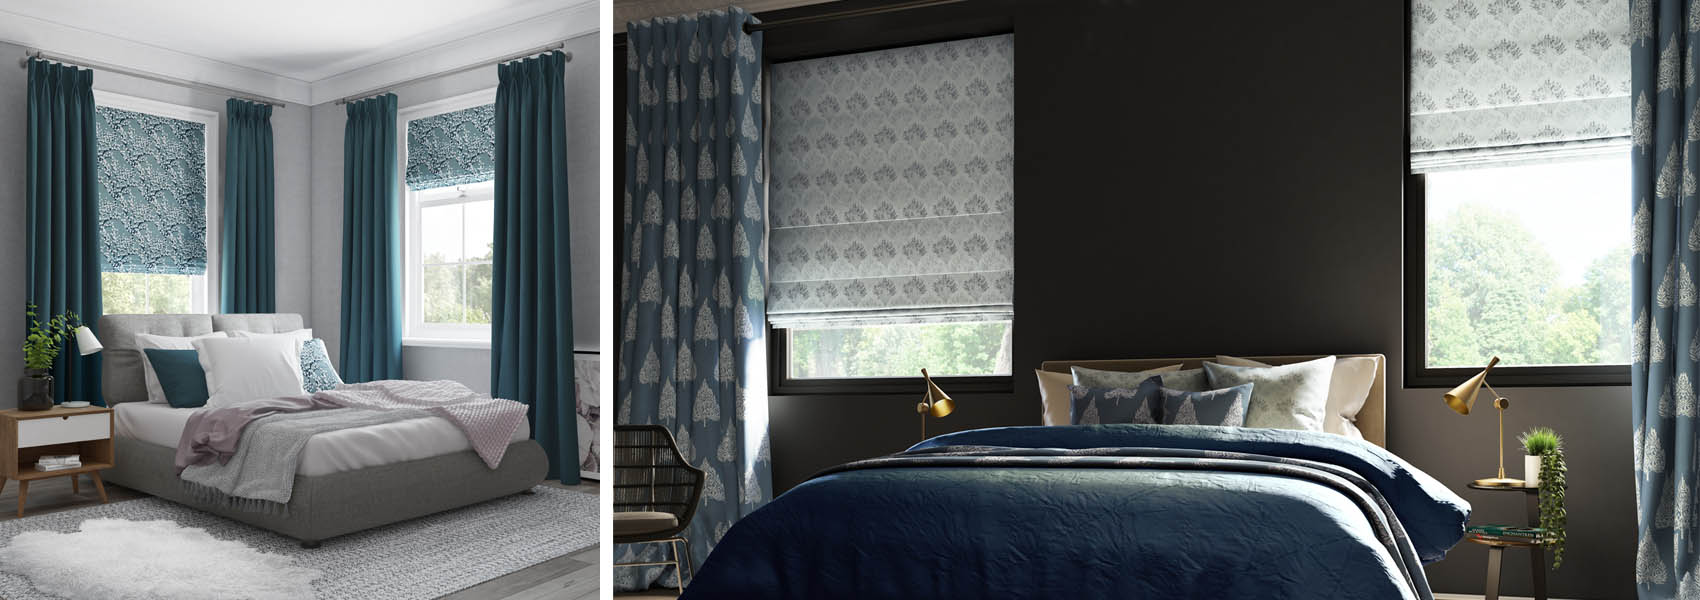 Curtains & Poles from Blackmore Vale Blinds